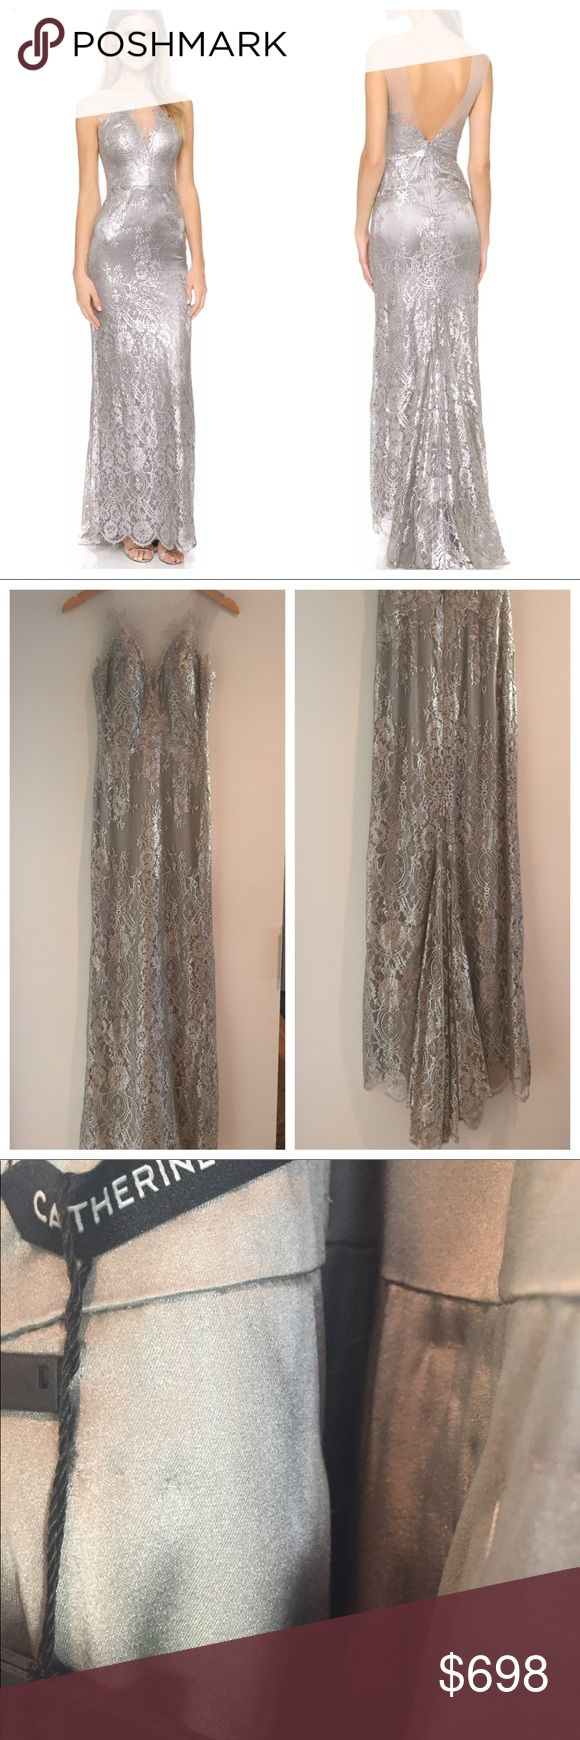 Catherine Deane Chloe Metallic Lace Gown Sz 0/2 Stunning lace gown with illusion neckline. Back zip. Fishtail hem. Built in soft cups.  Sold at Shopbop, Neiman Marcus and Bergdorf Goodman. Catherine Deane Dresses